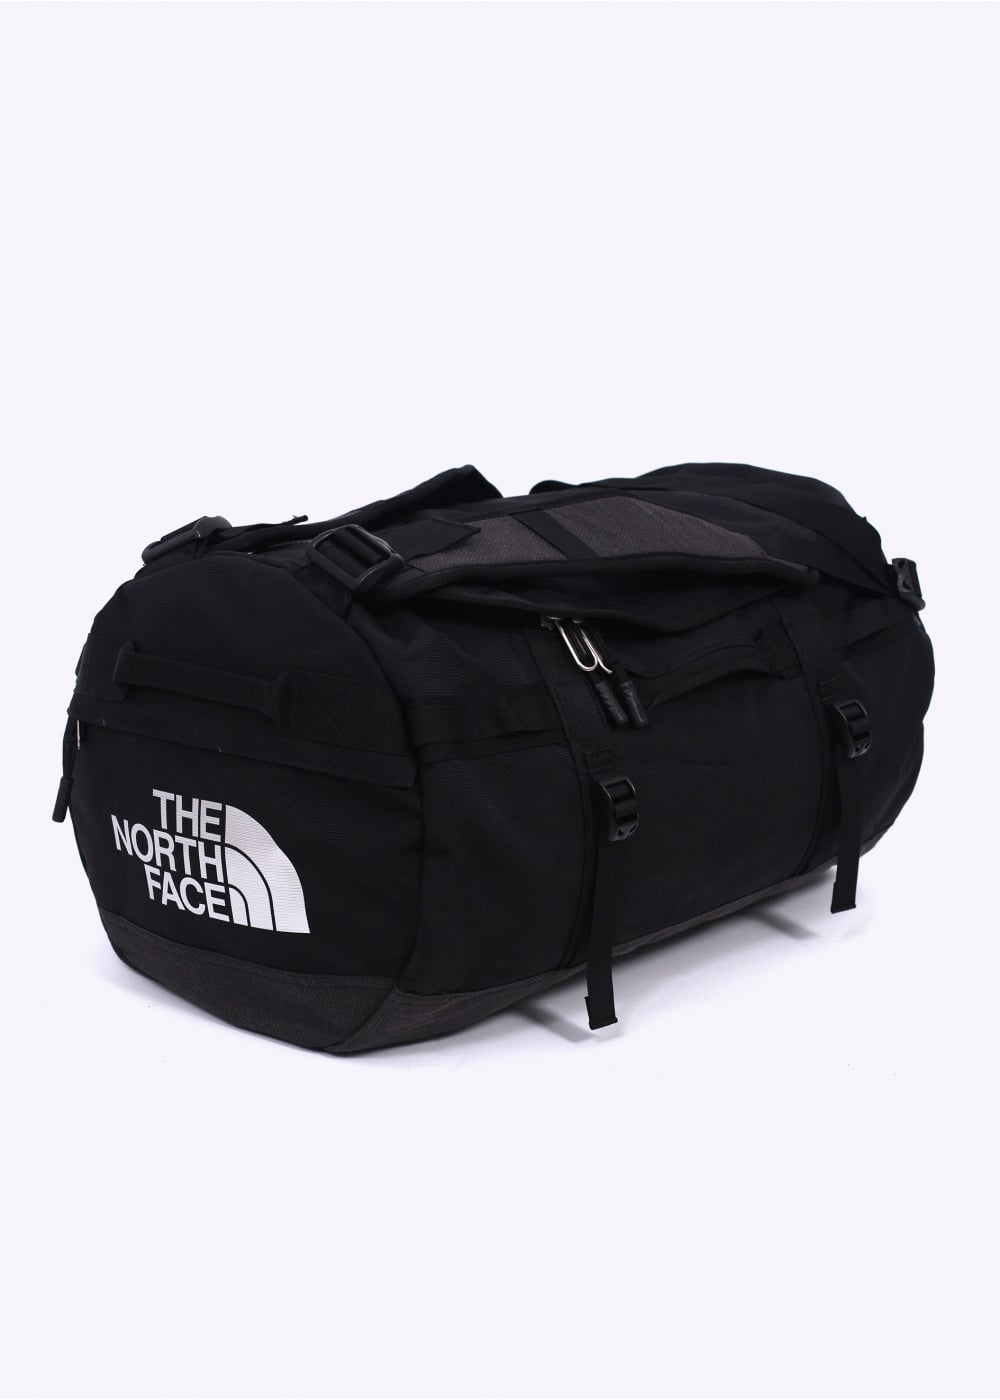 the north face m2m duffel bag black the north face. Black Bedroom Furniture Sets. Home Design Ideas